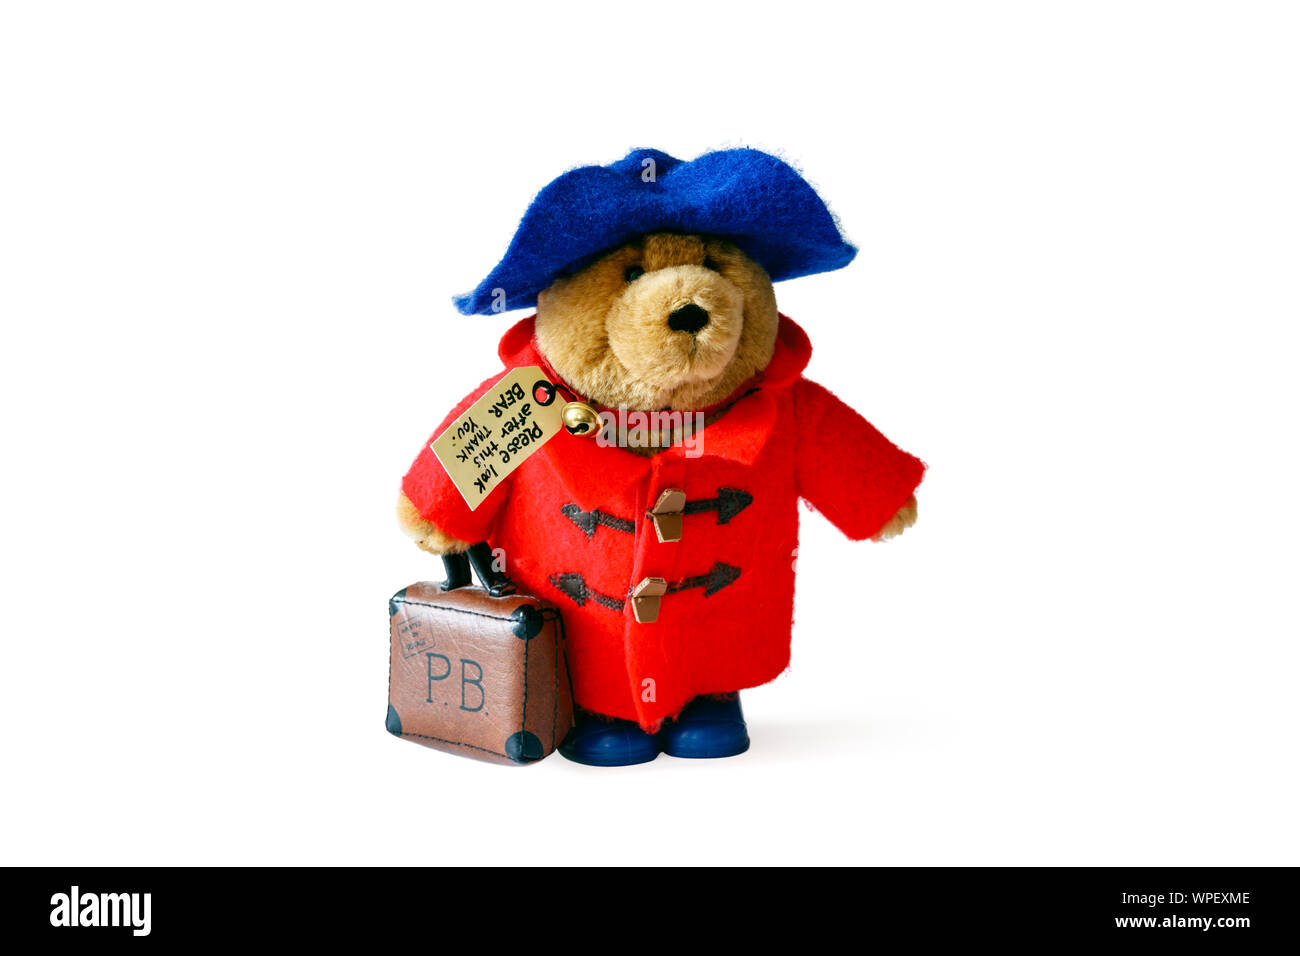 A Paddington Bear soft toy with red duffel coat, blue hat and suitcase, isolated against a white background Stock Photo